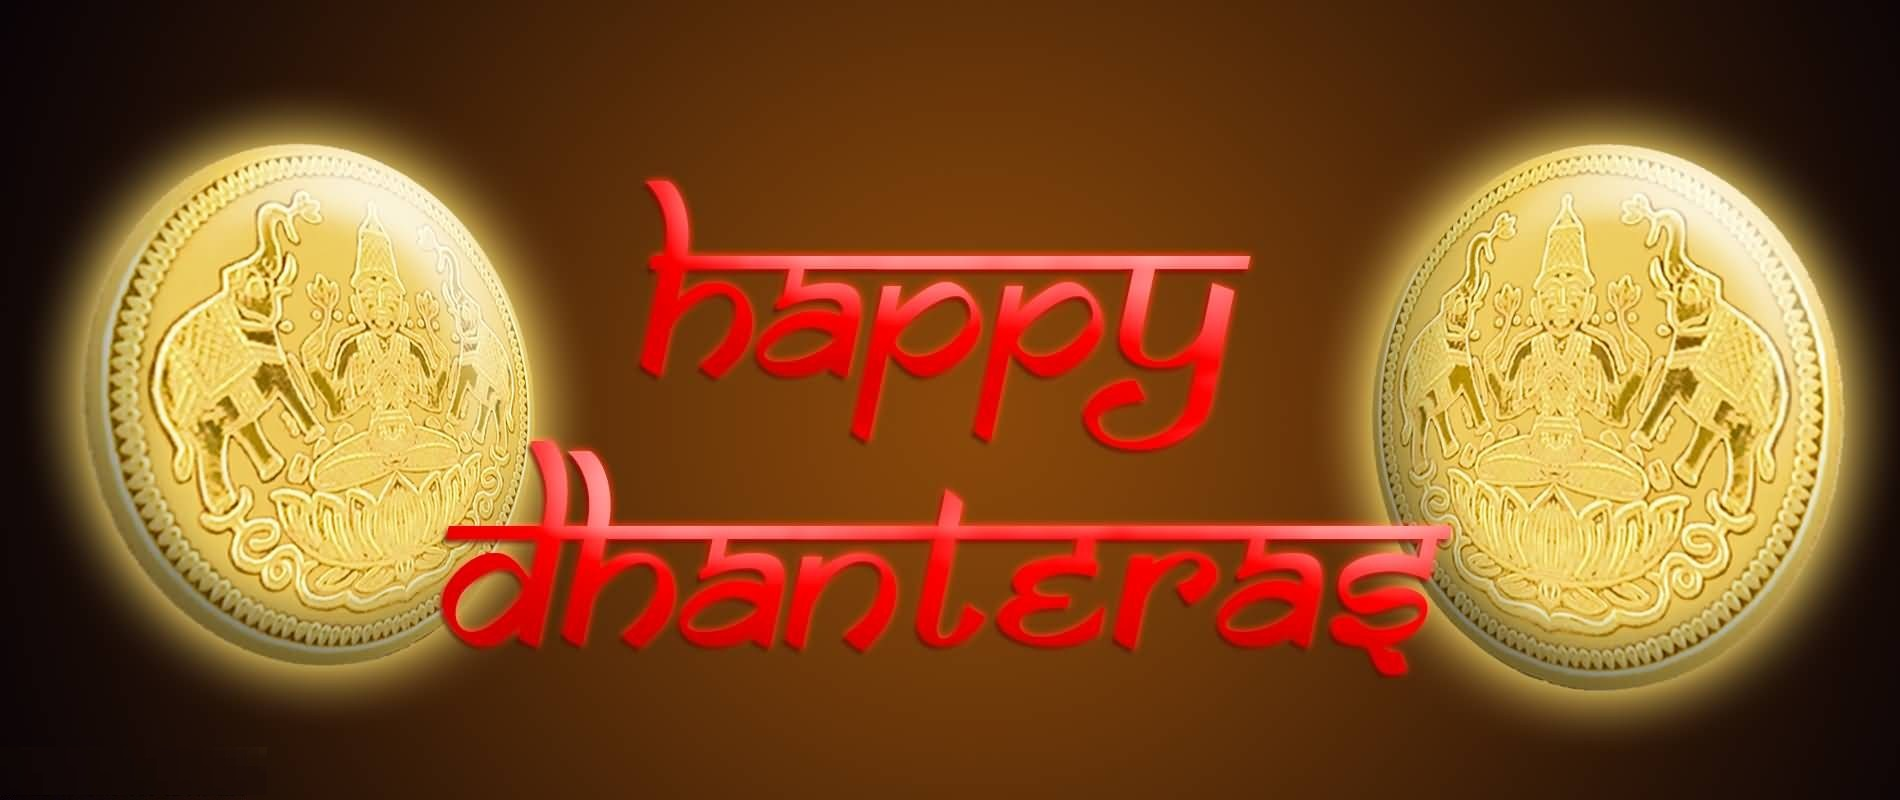 Dhanteras Facebook Cover Picture, Banners, Profile Picture & WhatsApp Dp